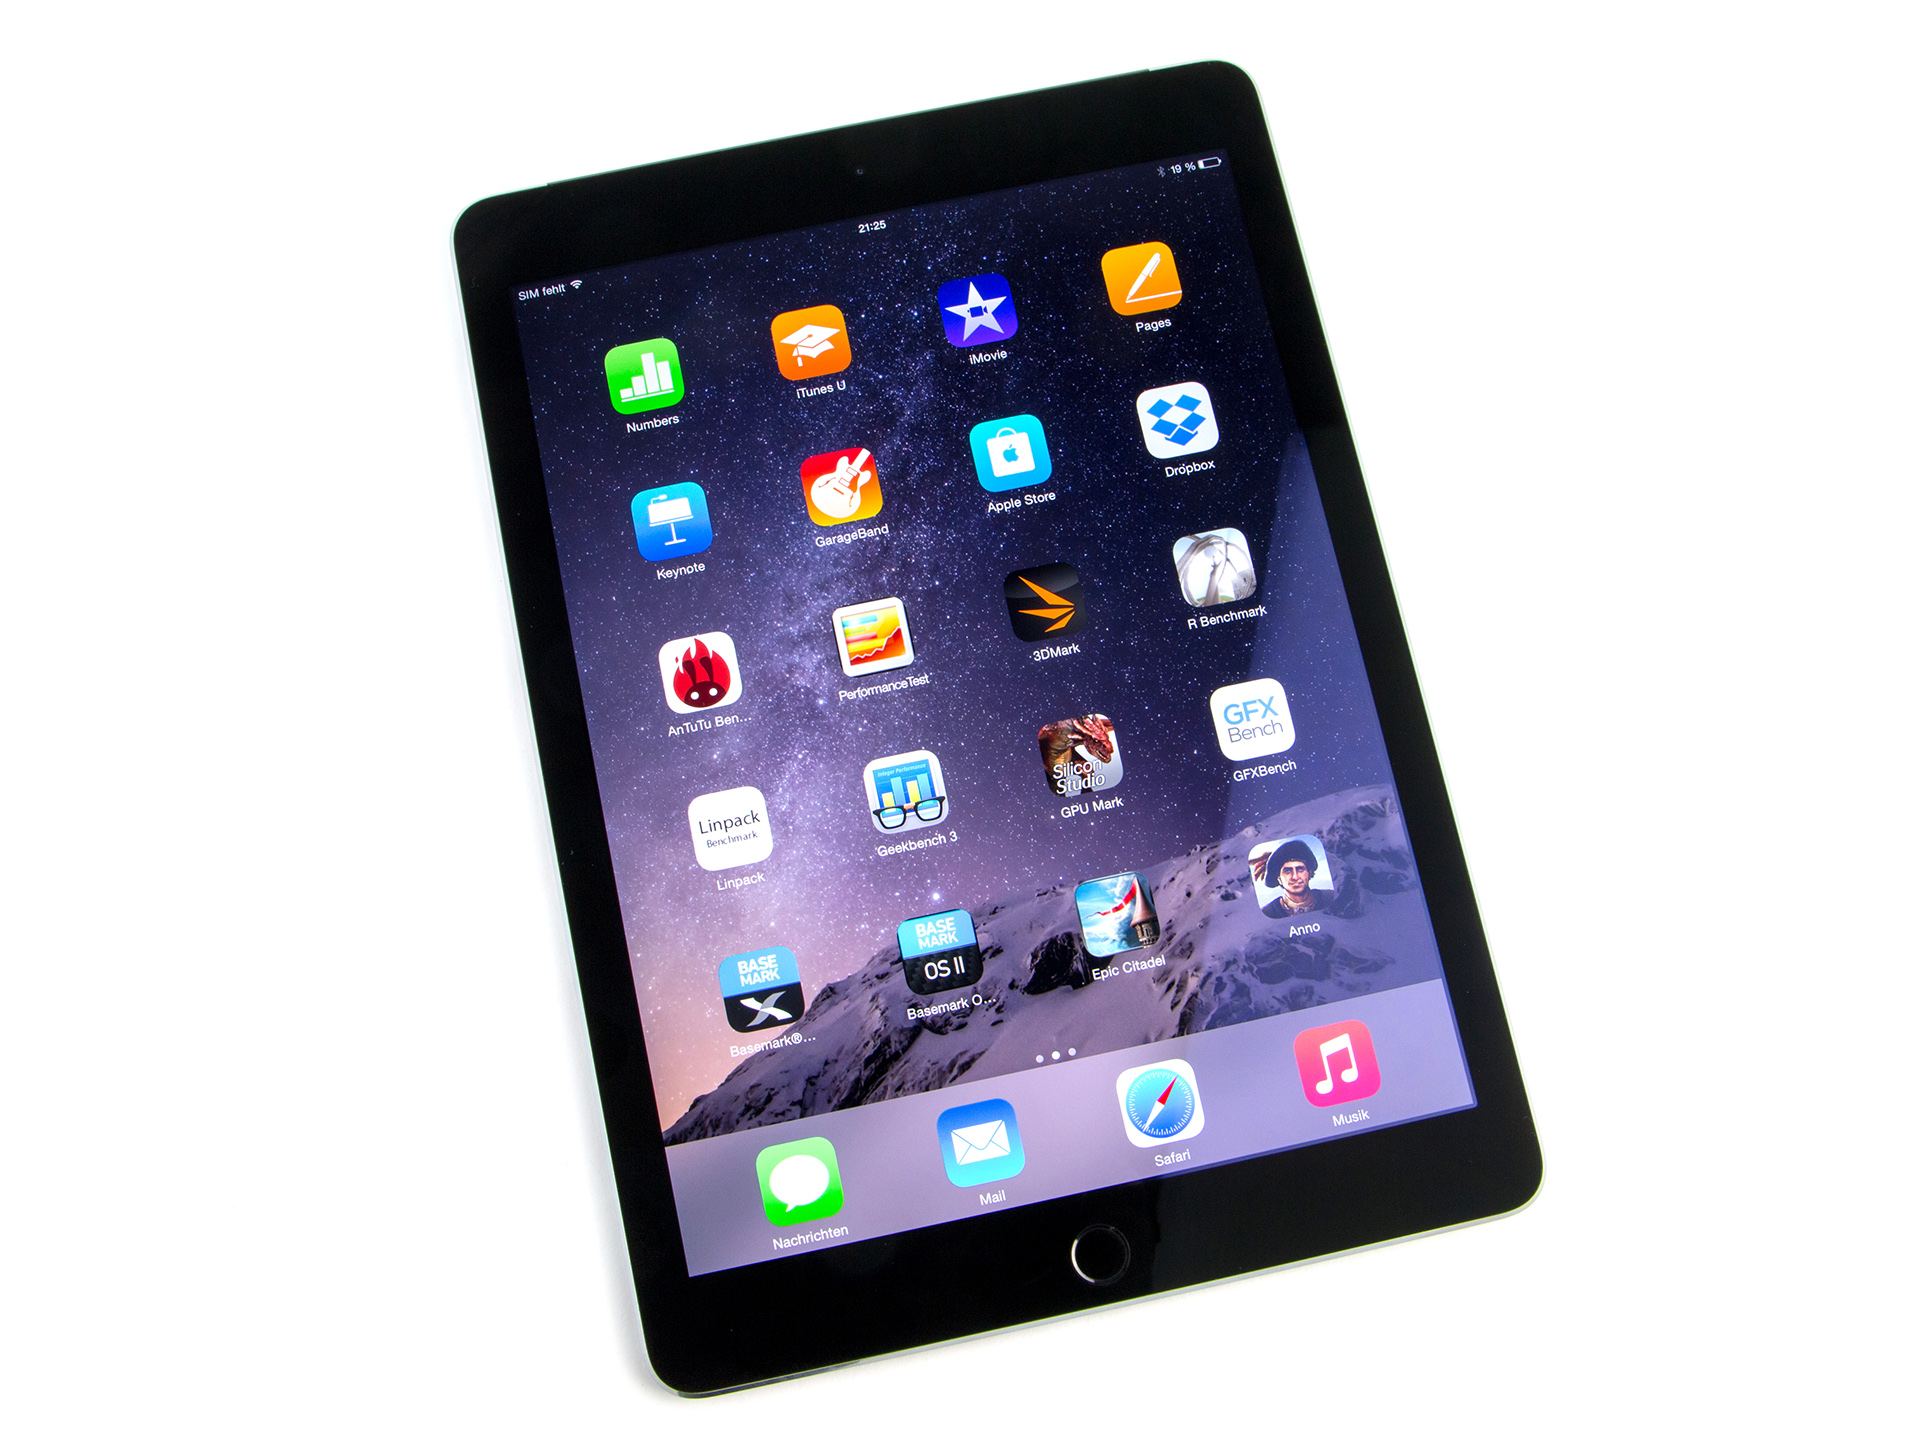 test apple ipad air 2 a1567 128 gb lte tablet. Black Bedroom Furniture Sets. Home Design Ideas